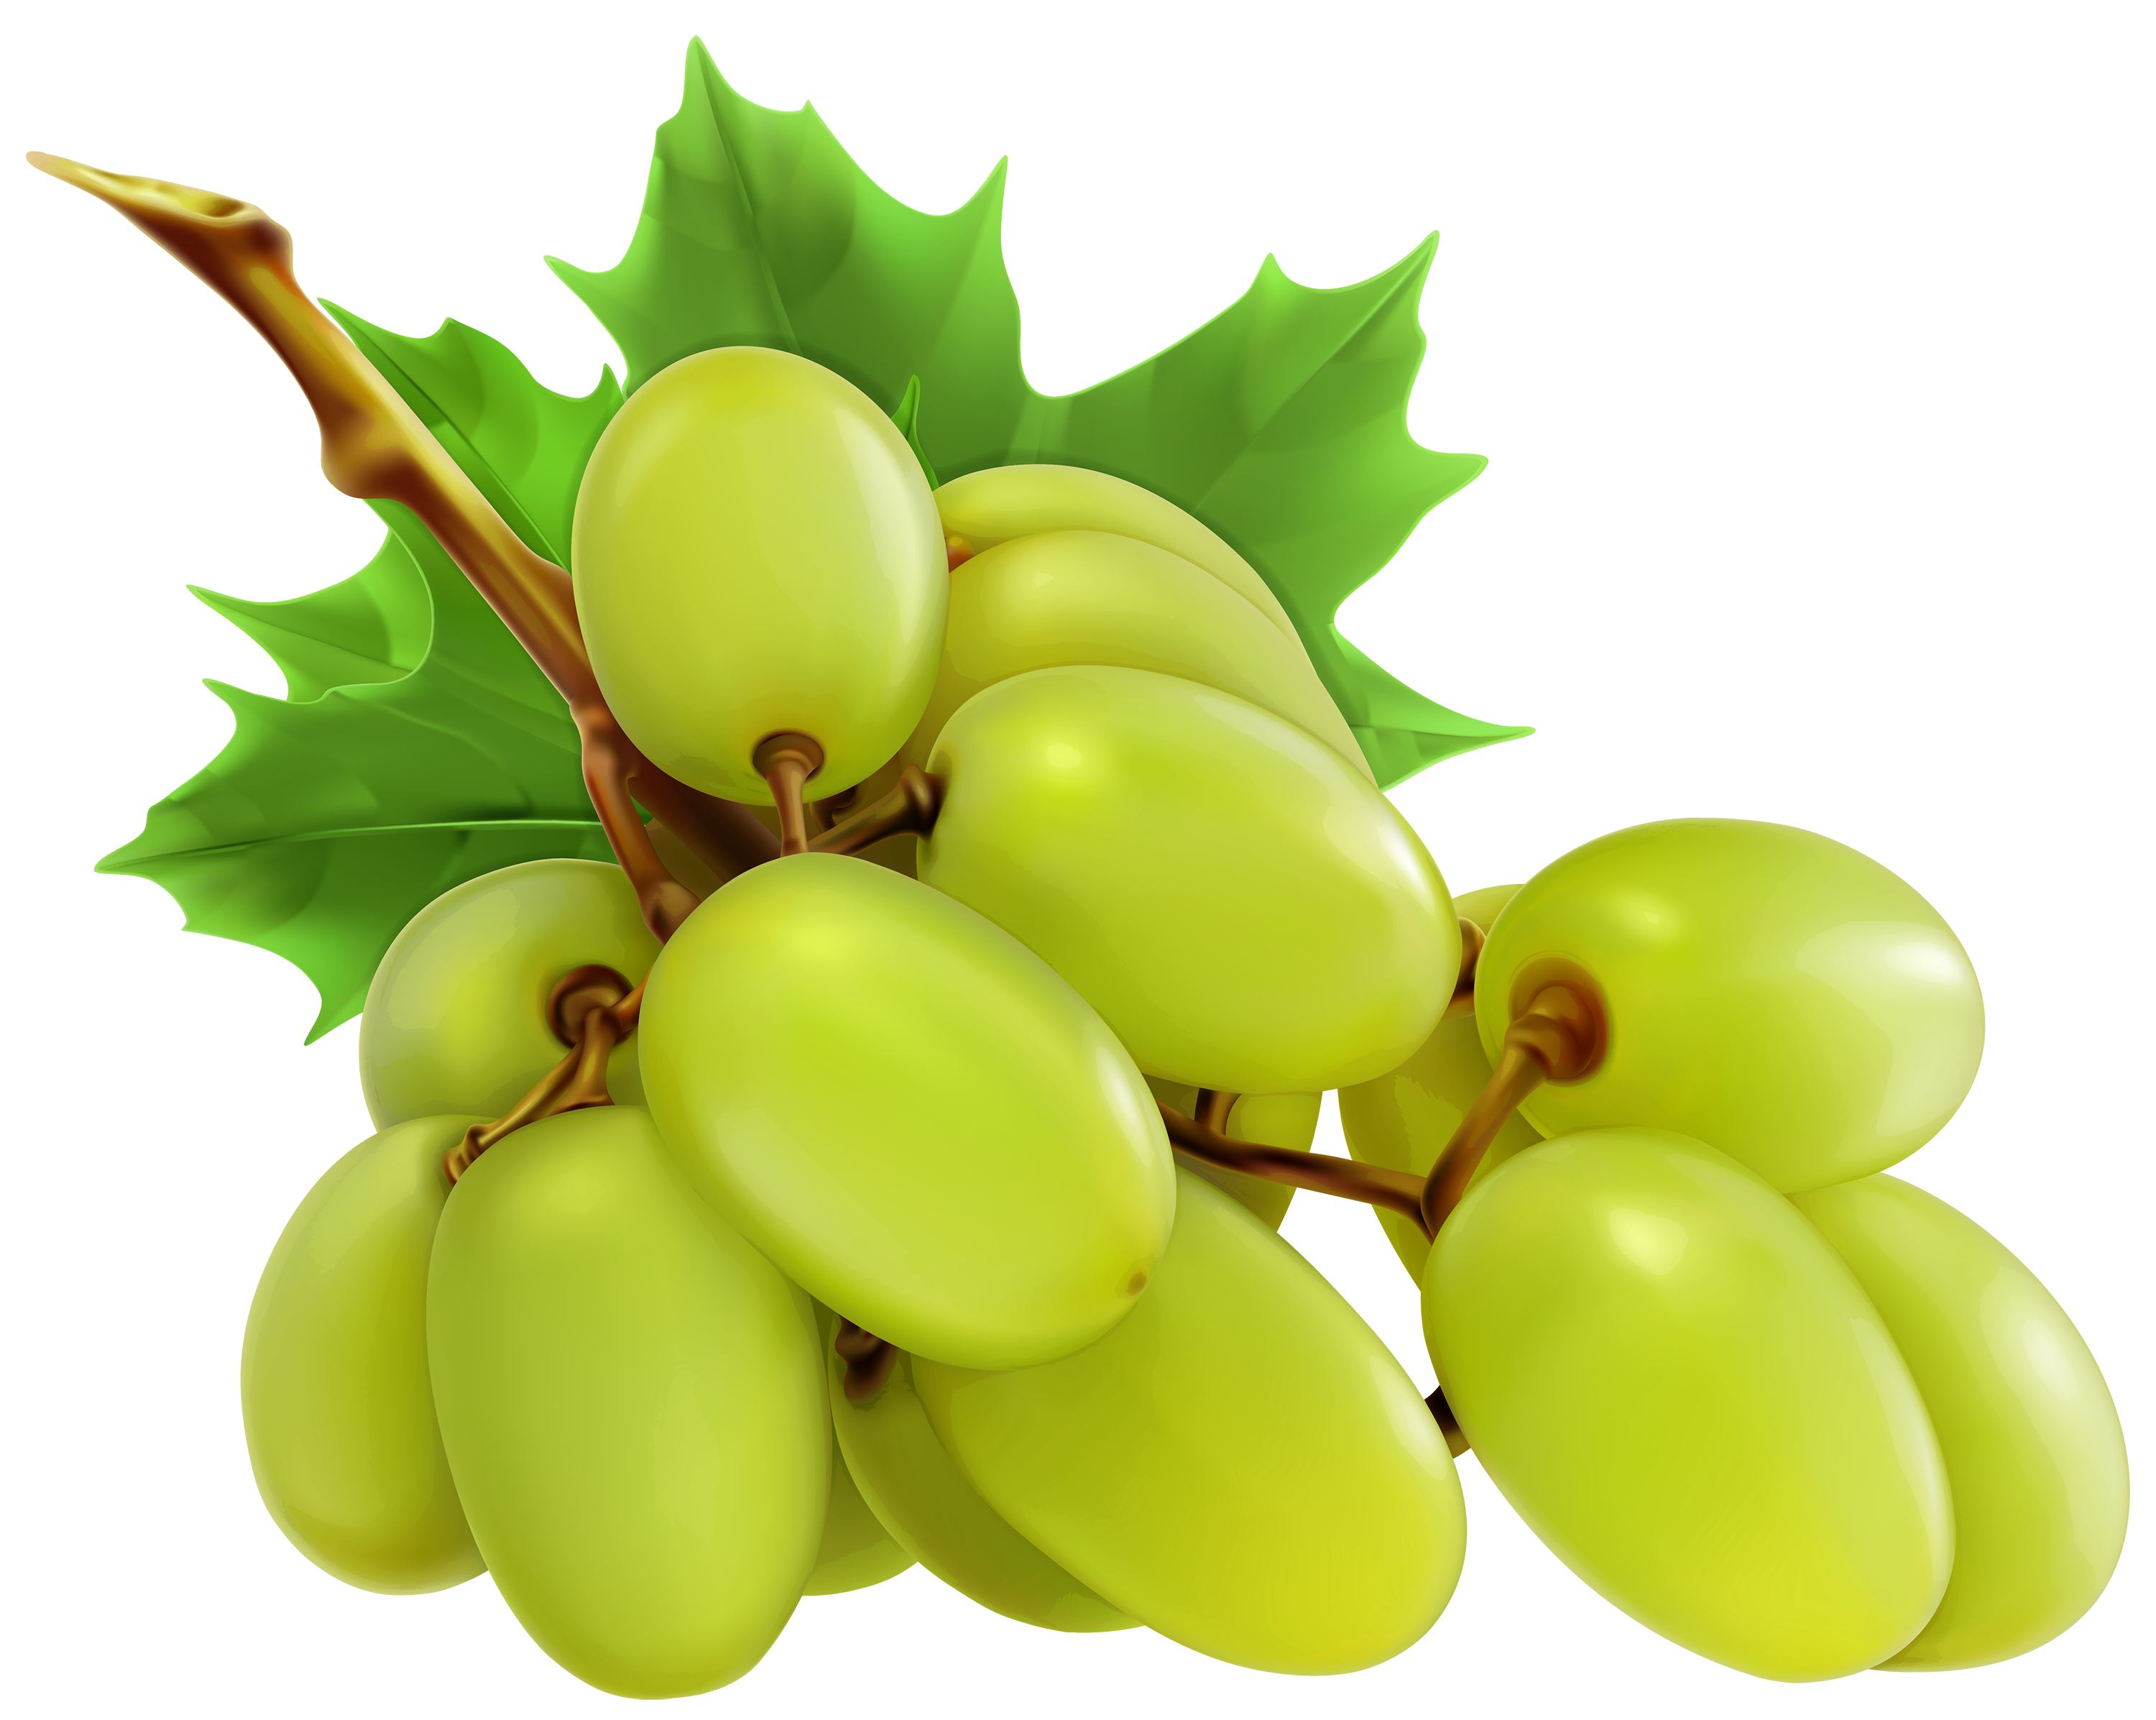 Transparent grapes white